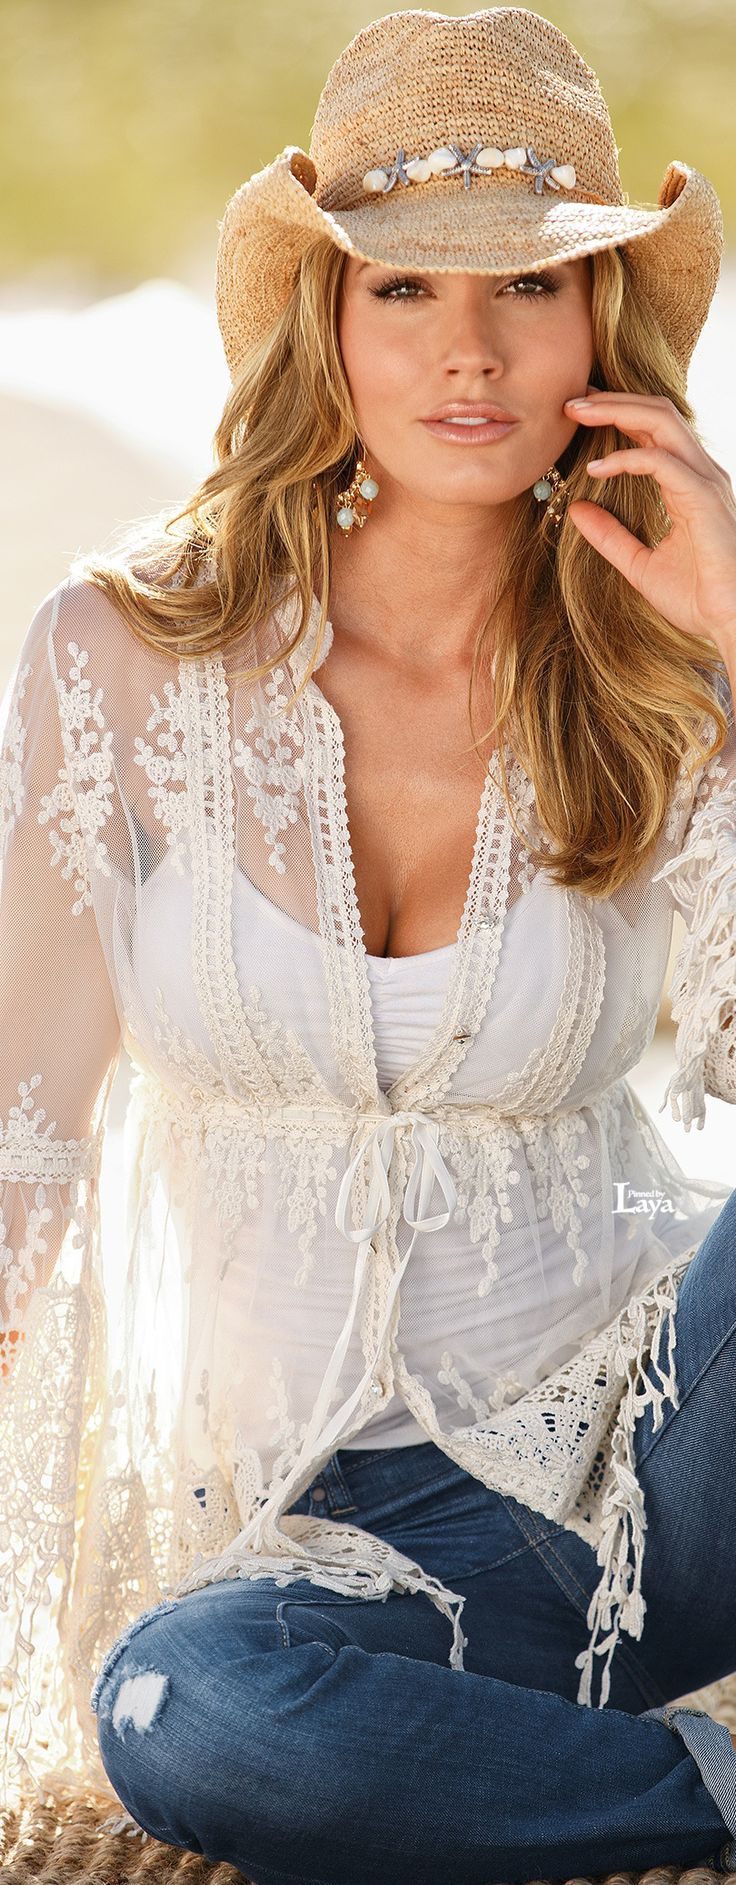 Love the lace top and cowgirl hat!!!! ~~~